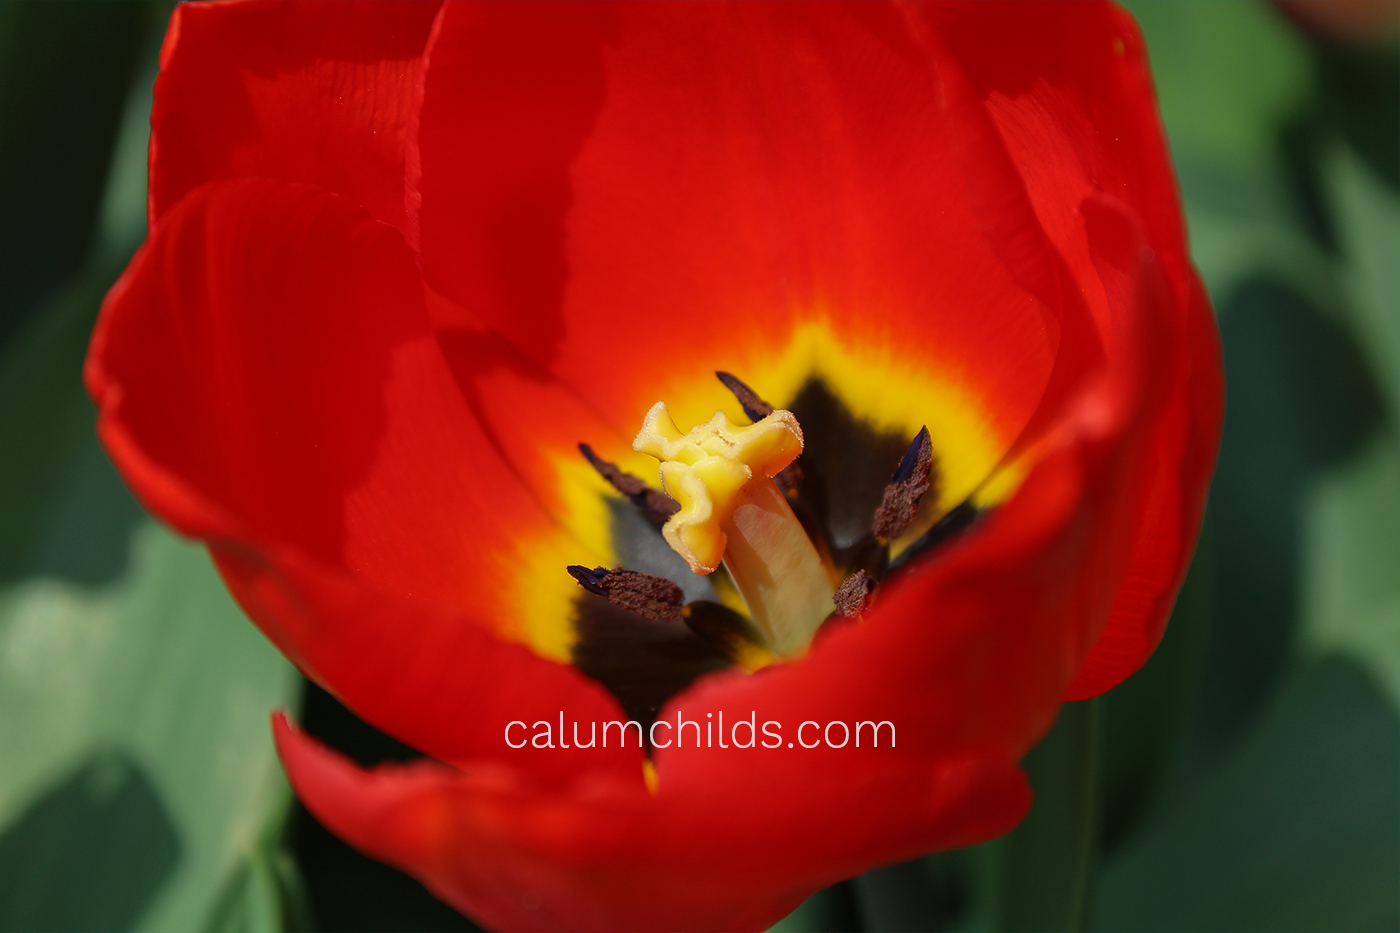 The stamen of a red tulip is on show, surrounded by it's red petals.